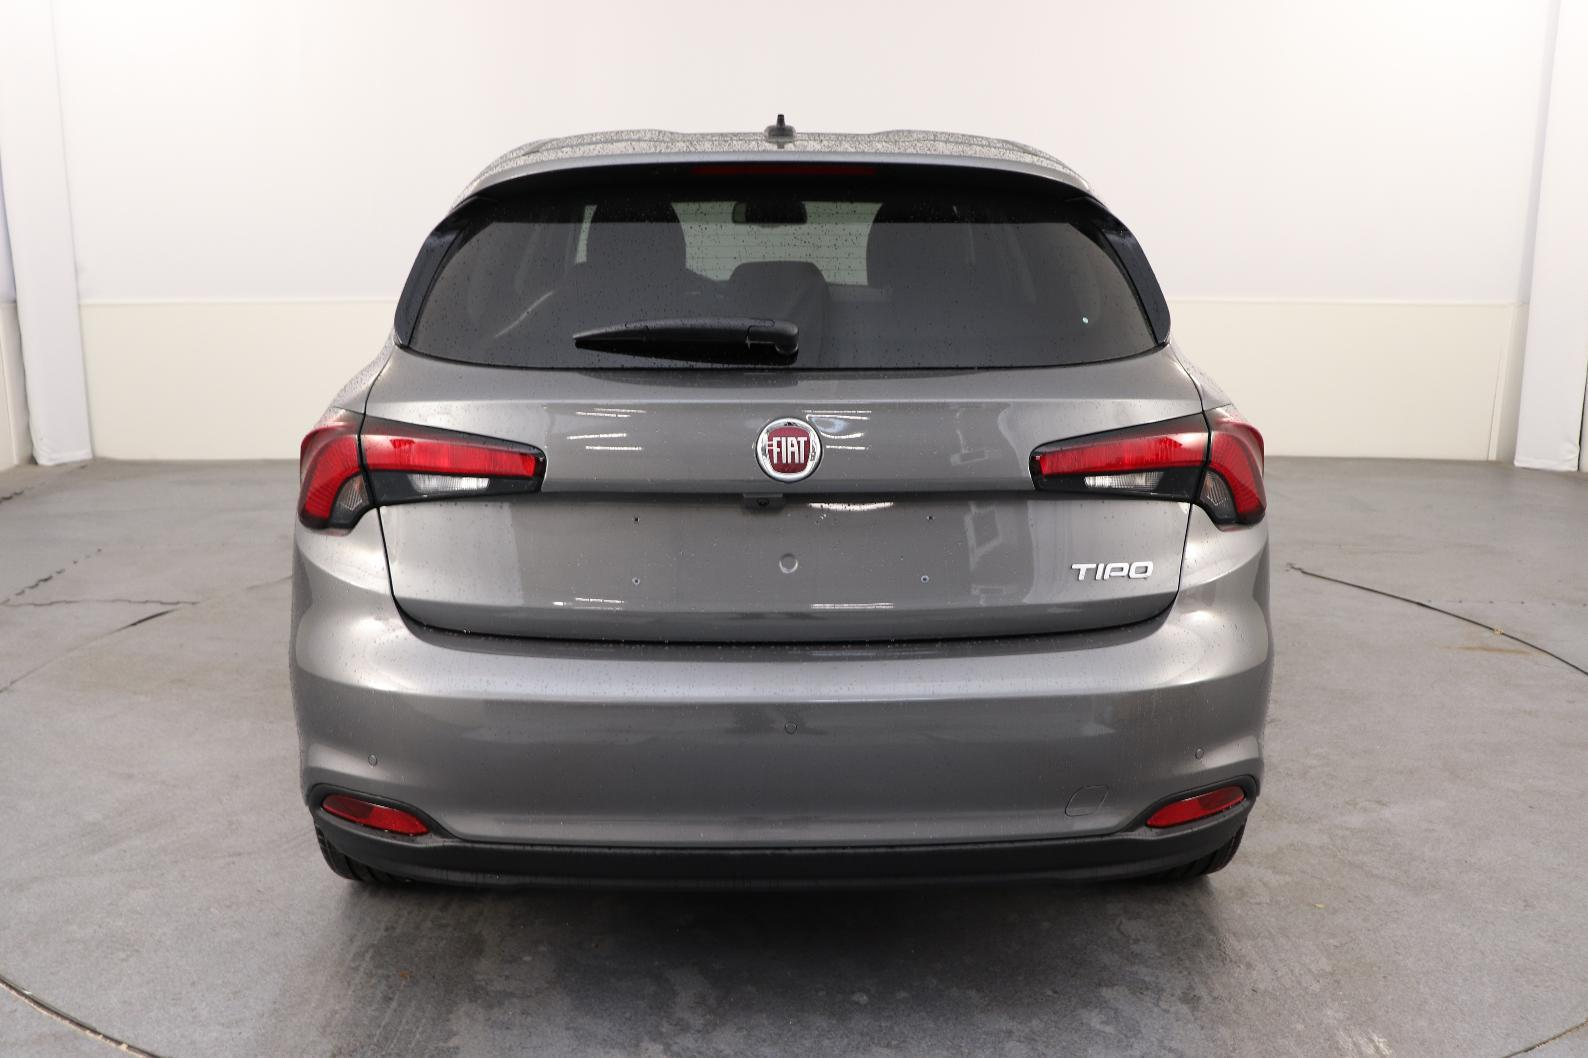 FIAT TIPO 5 PORTES MY20 Tipo 5 Portes 1.6 MultiJet 120 ch S&S Lounge